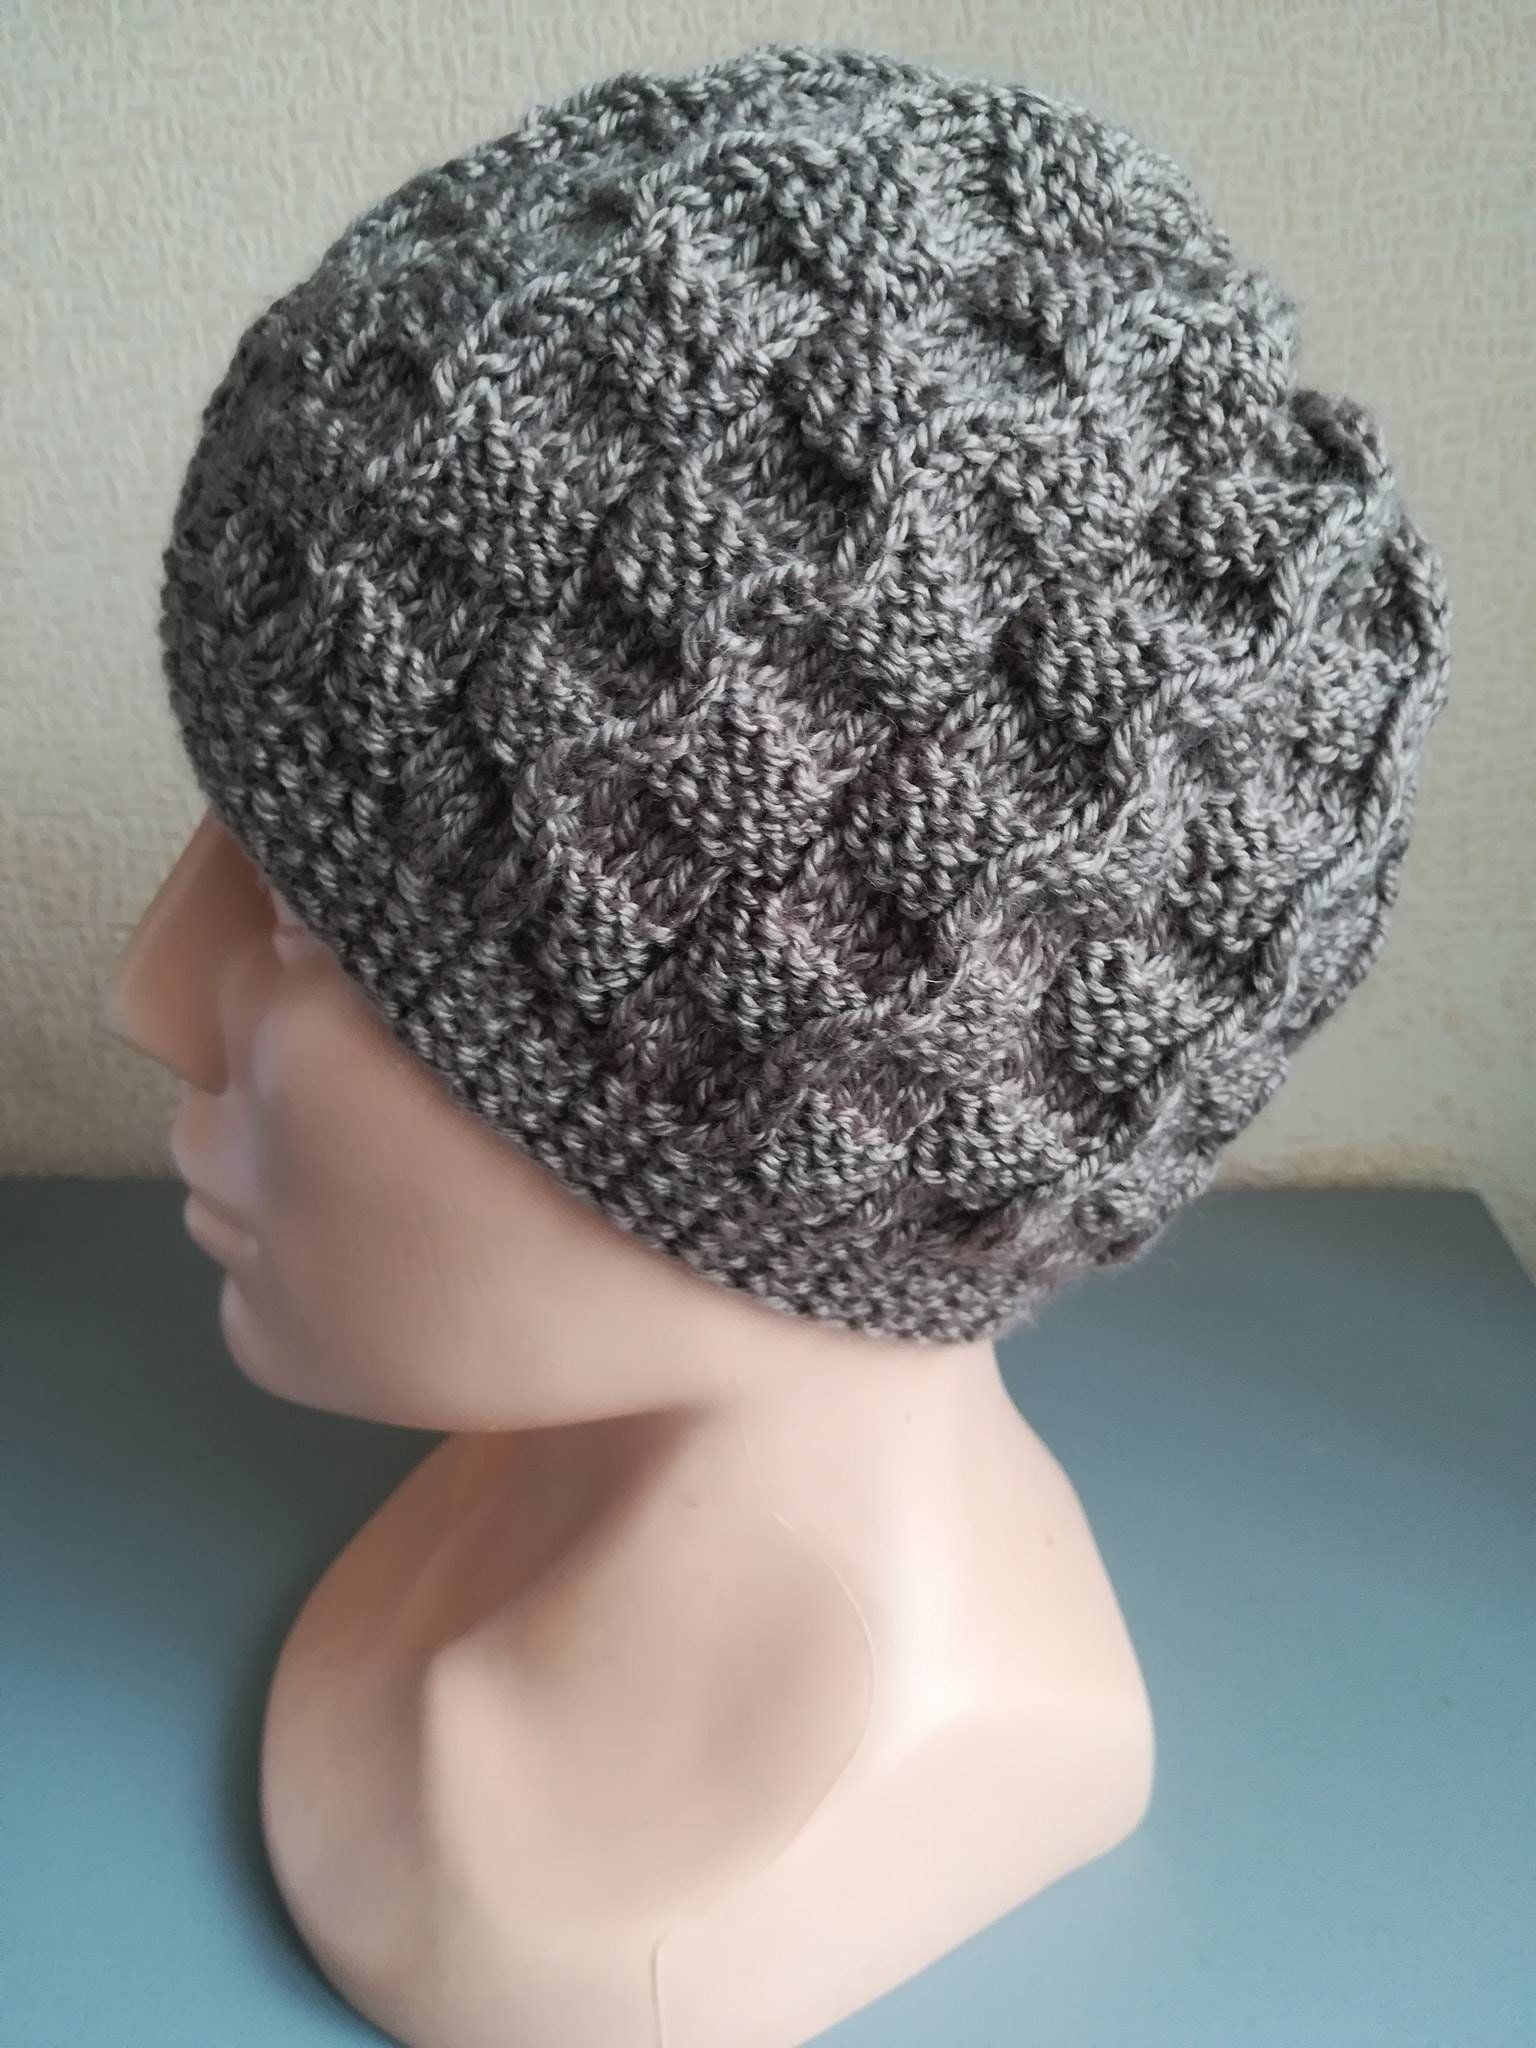 Winter Hat Women s wooly hat Winter Hat Hat with plaits Slouch Beanie  Winter apparel Unisex Wool Cable Slouchy Beanie Slouch Beanie by VIKcraft  on Etsy e333cff395